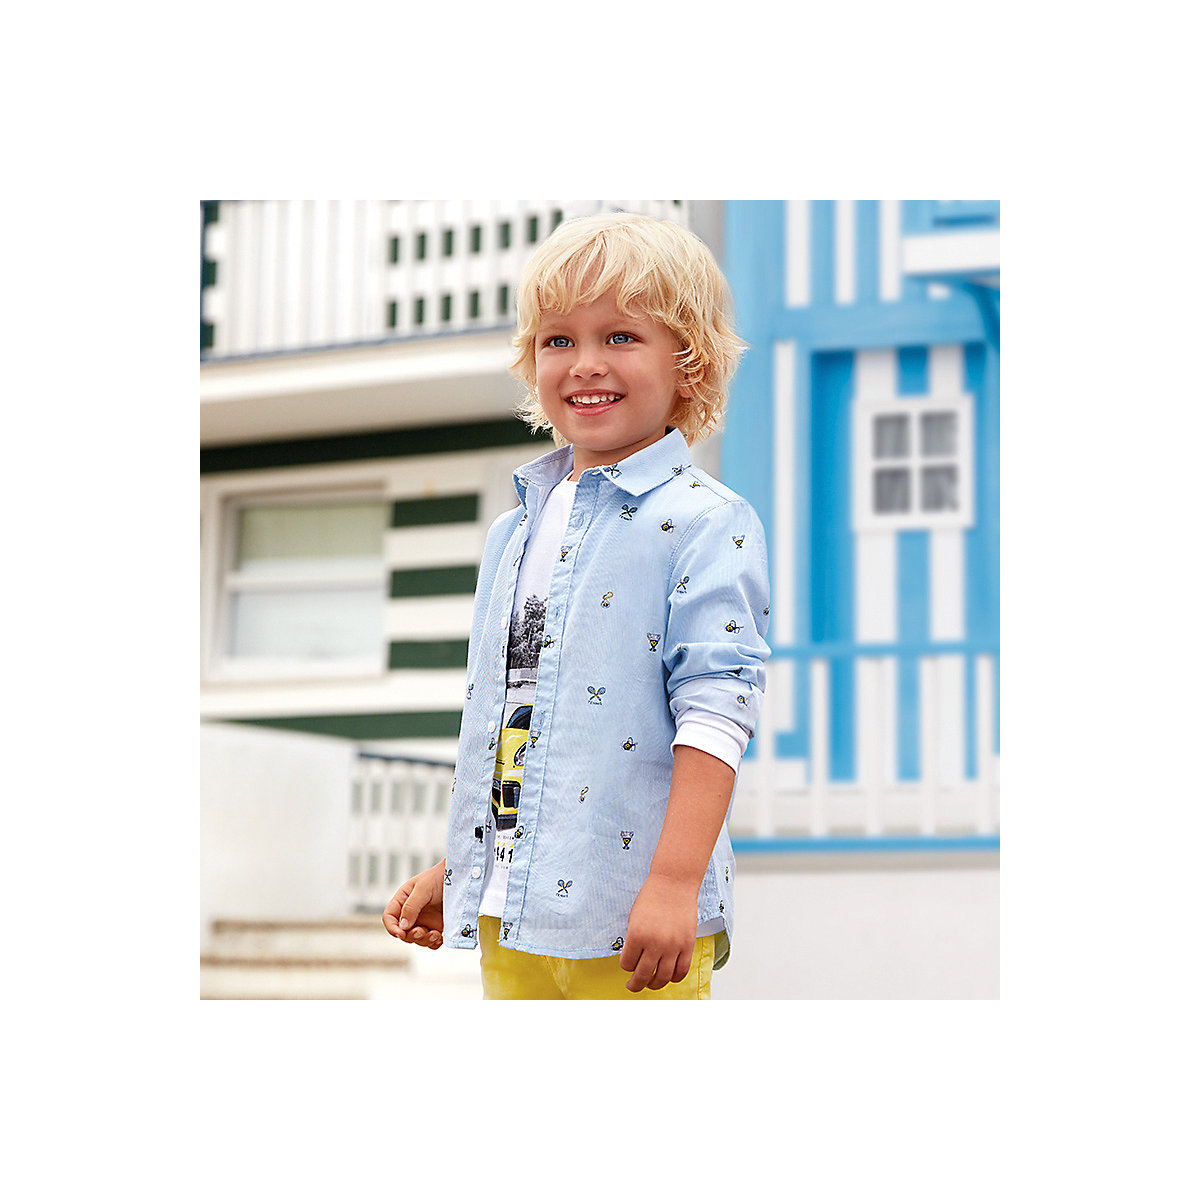 Blouses & Shirts MAYORAL 10689113 Children s Clothing shirt with long sleeve for a boy natural materials